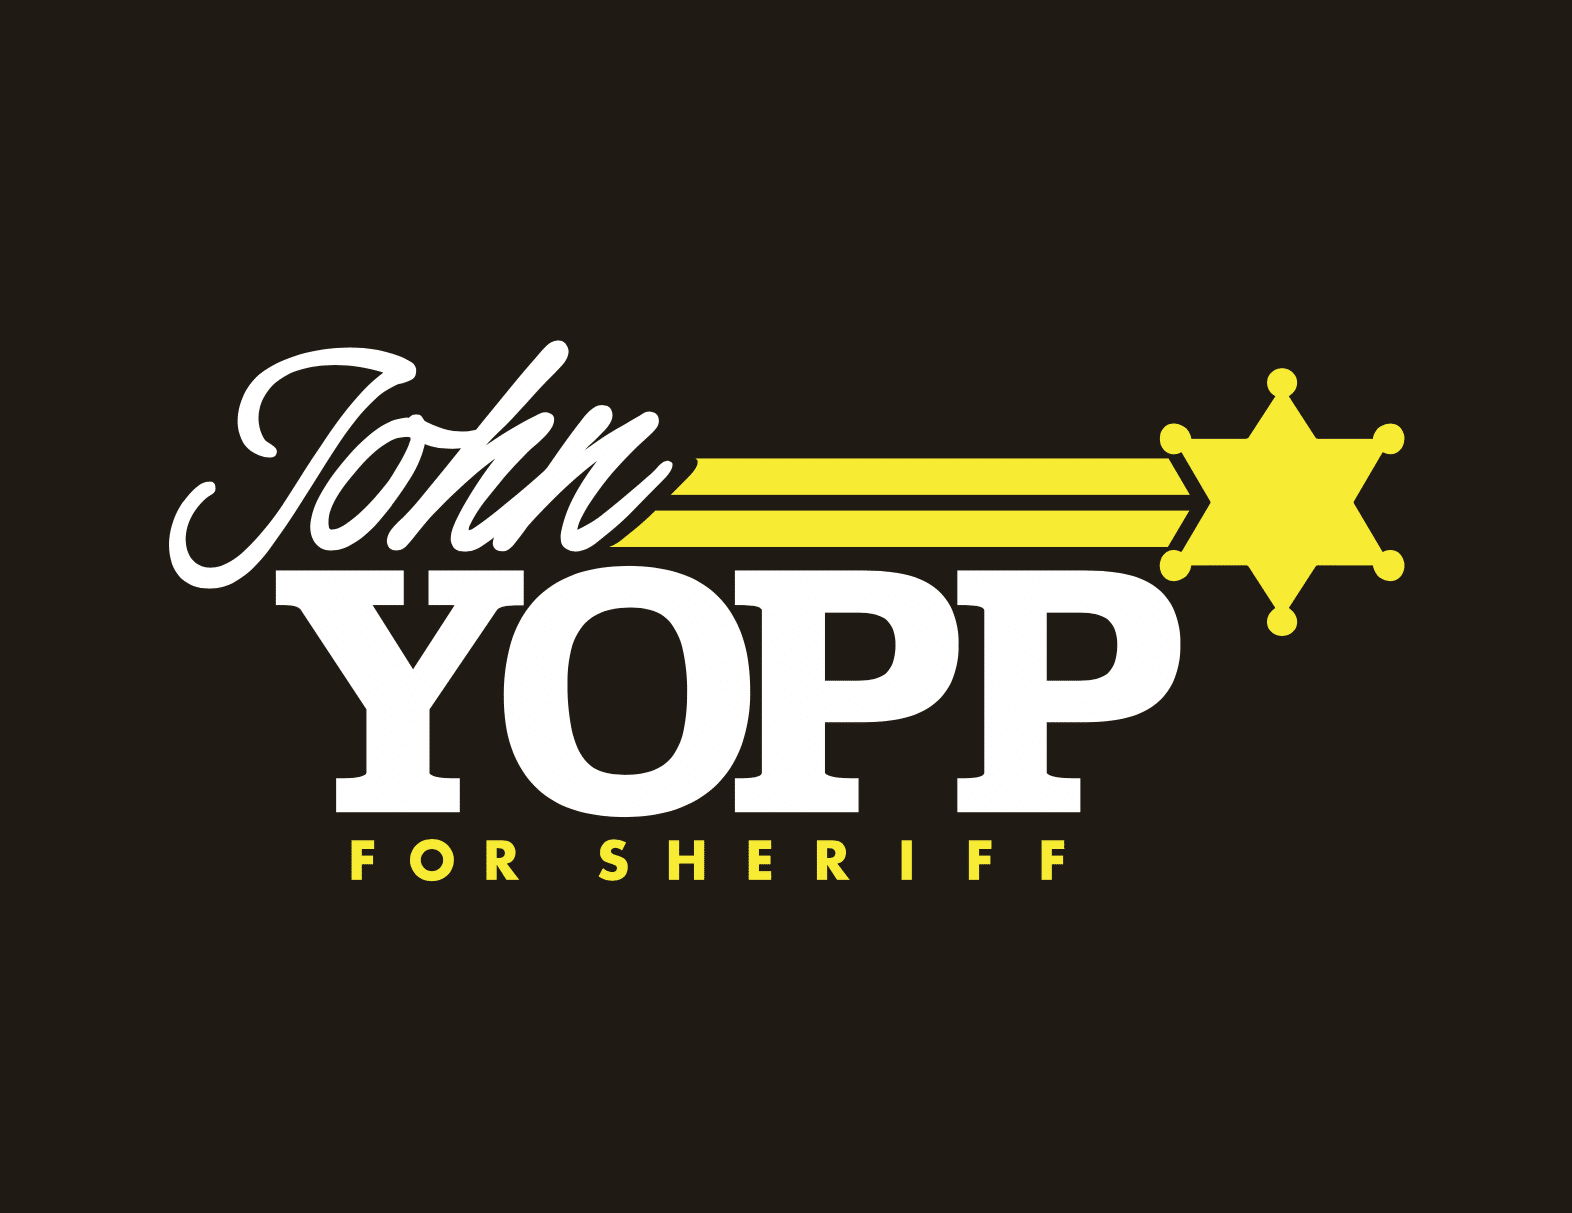 John Yopp for Sherrif logo design by Tidemark Creative